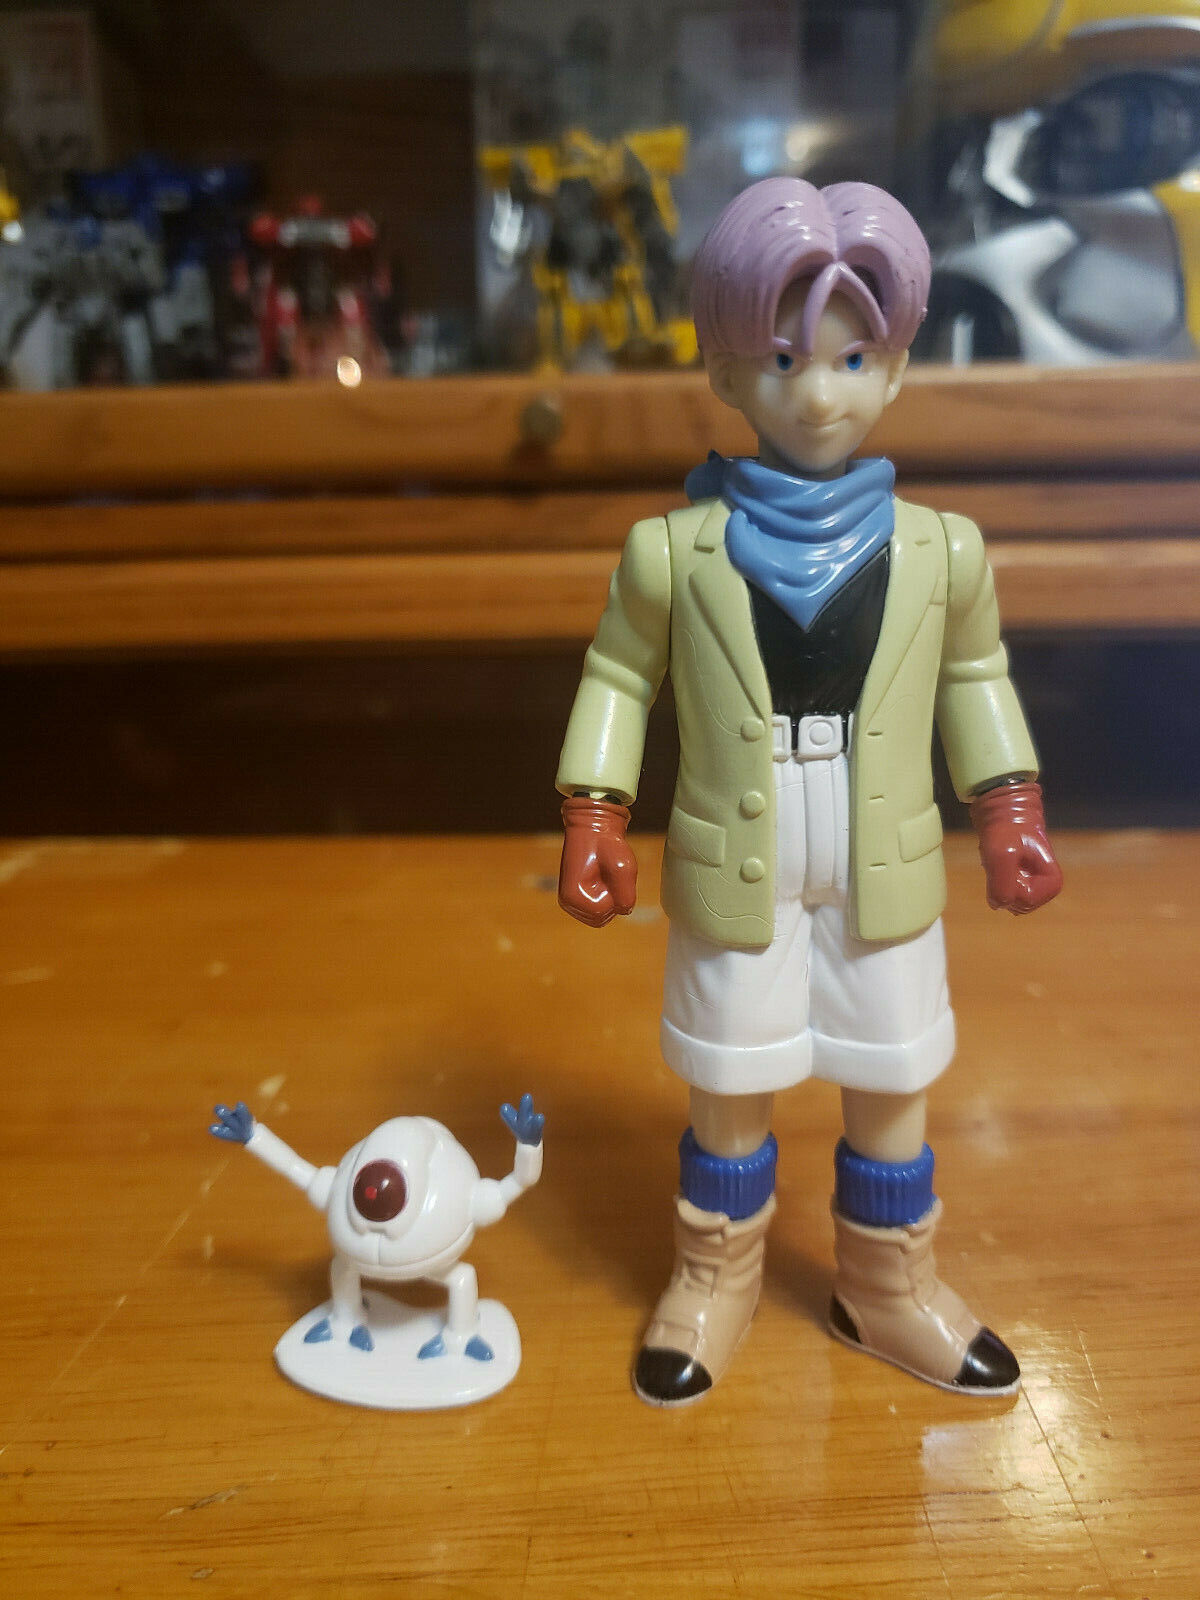 Character:GT Trunks and Gill Vol 29:BANDAI Dragonball Z  and Dragon Ball GT super battle collection AB Toys & Irwin